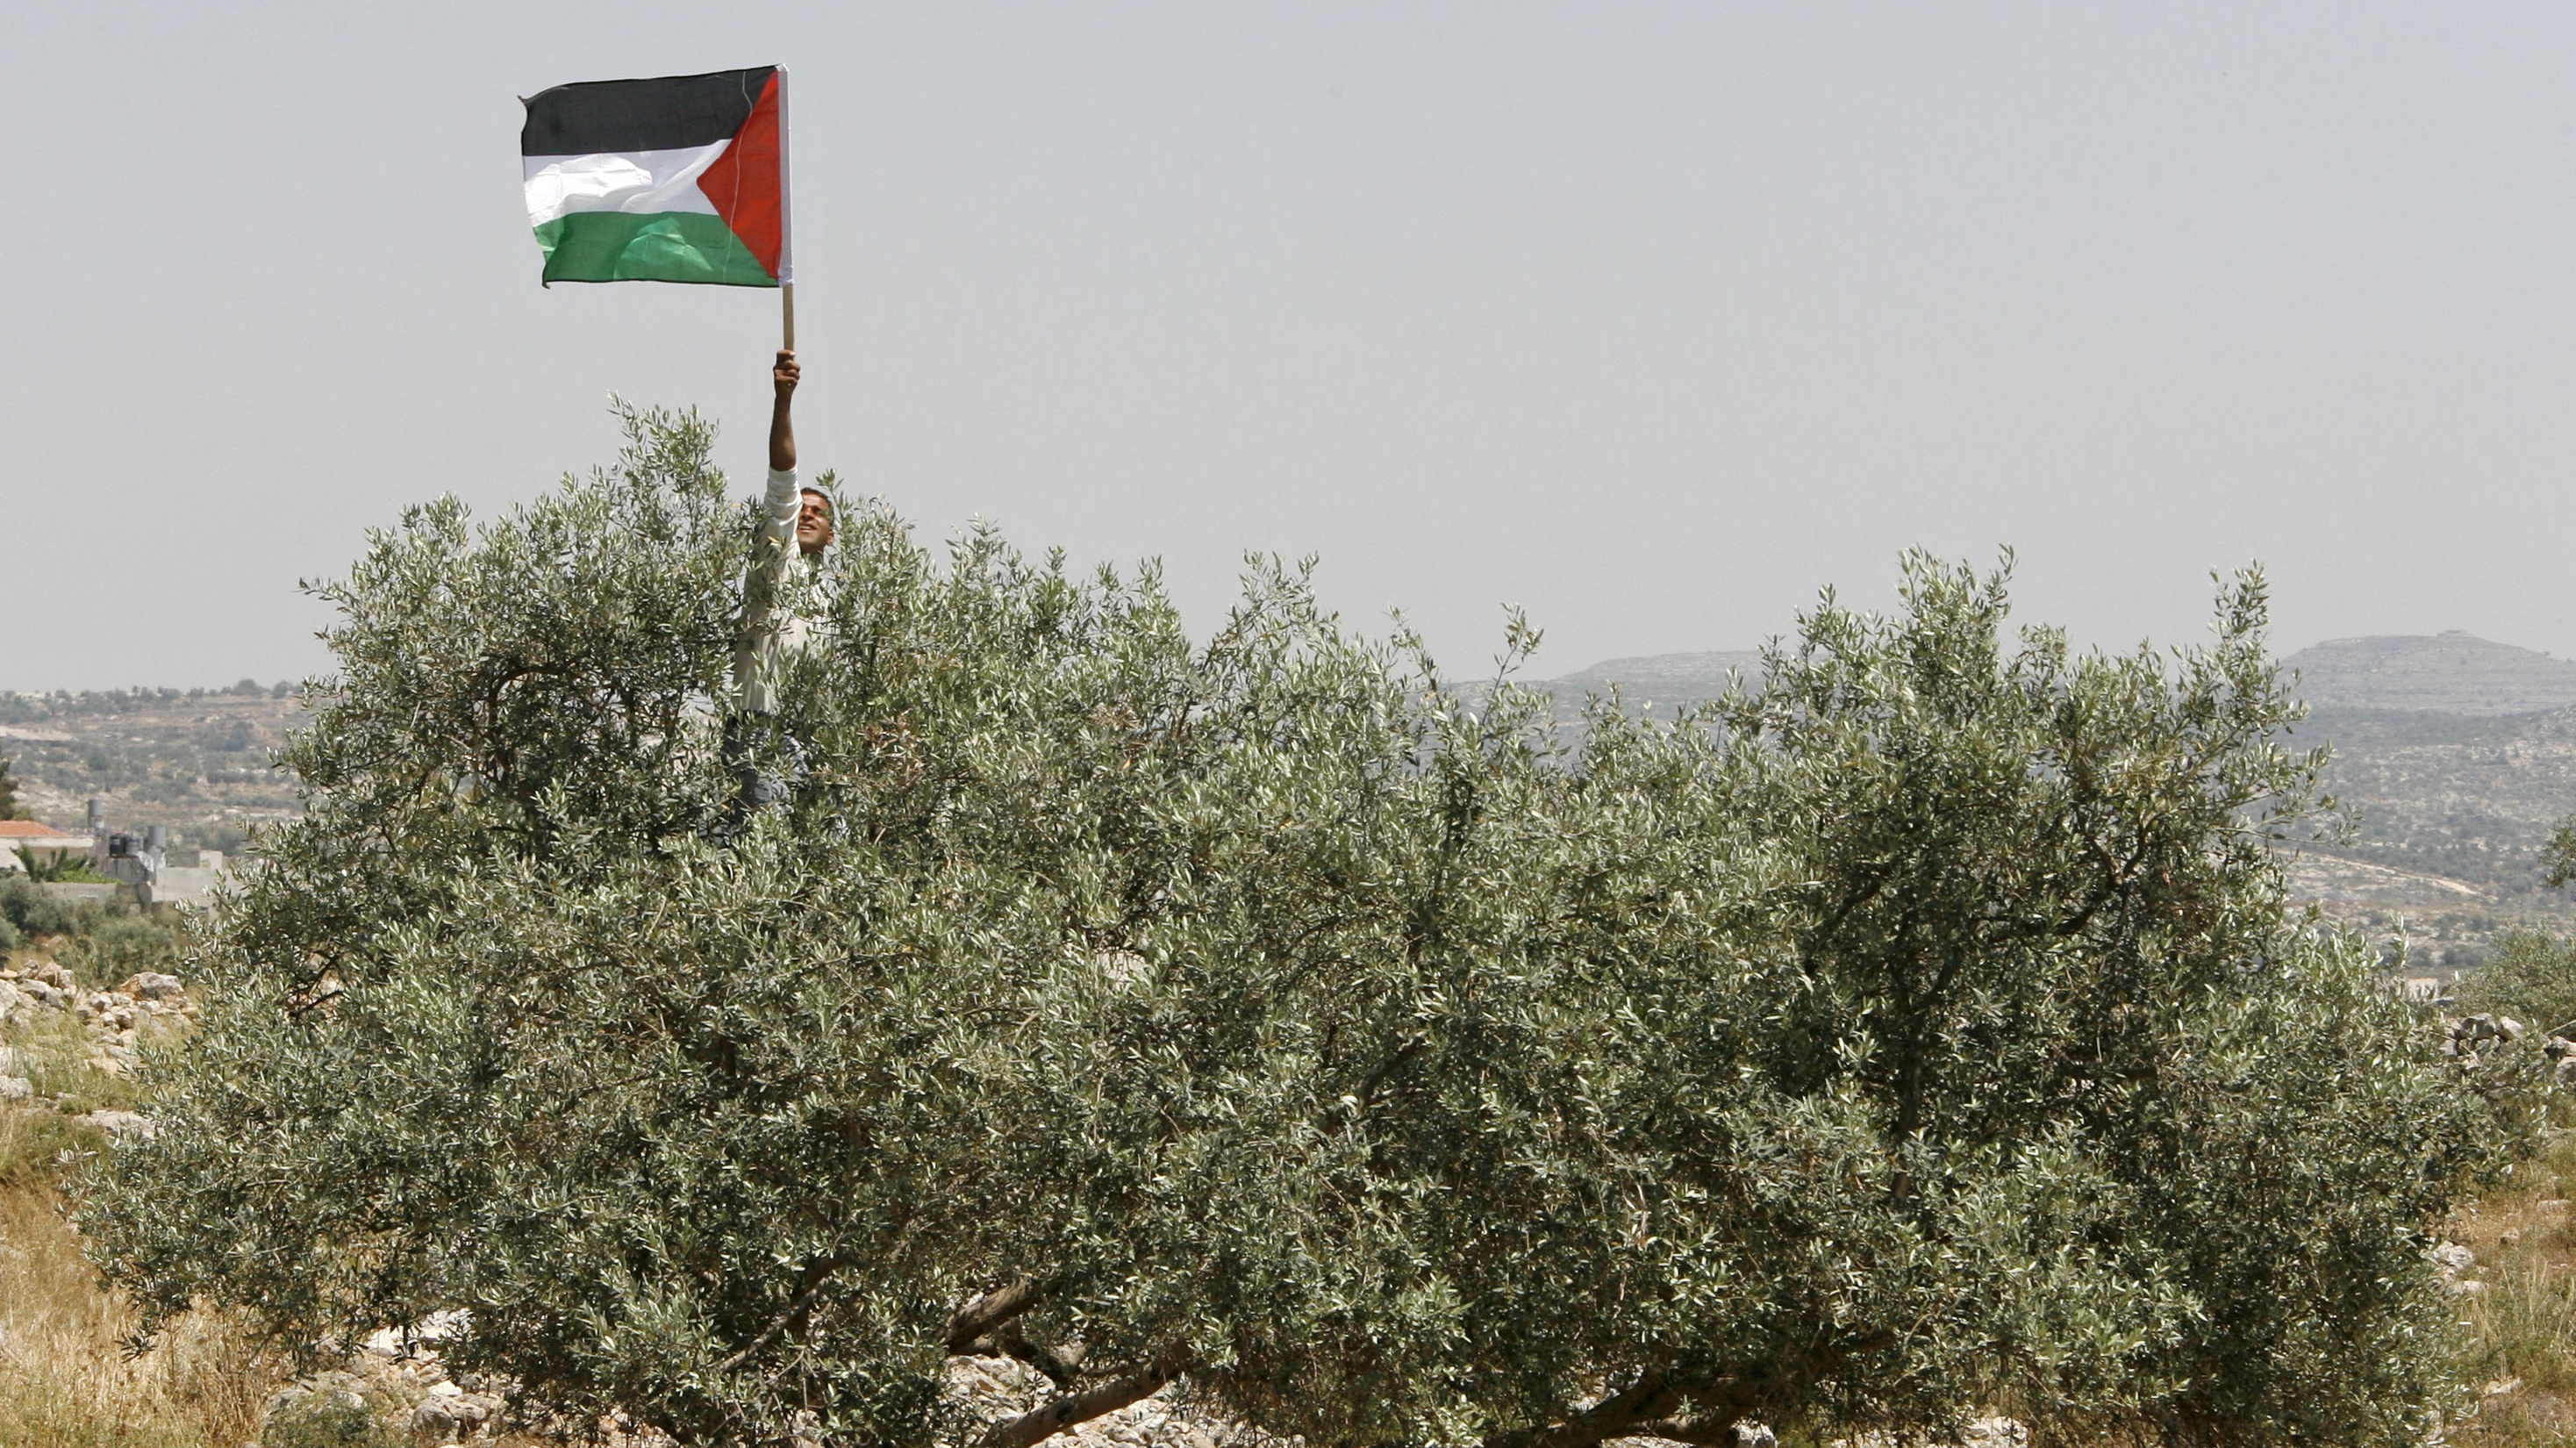 Palestinian flag in Bilin.